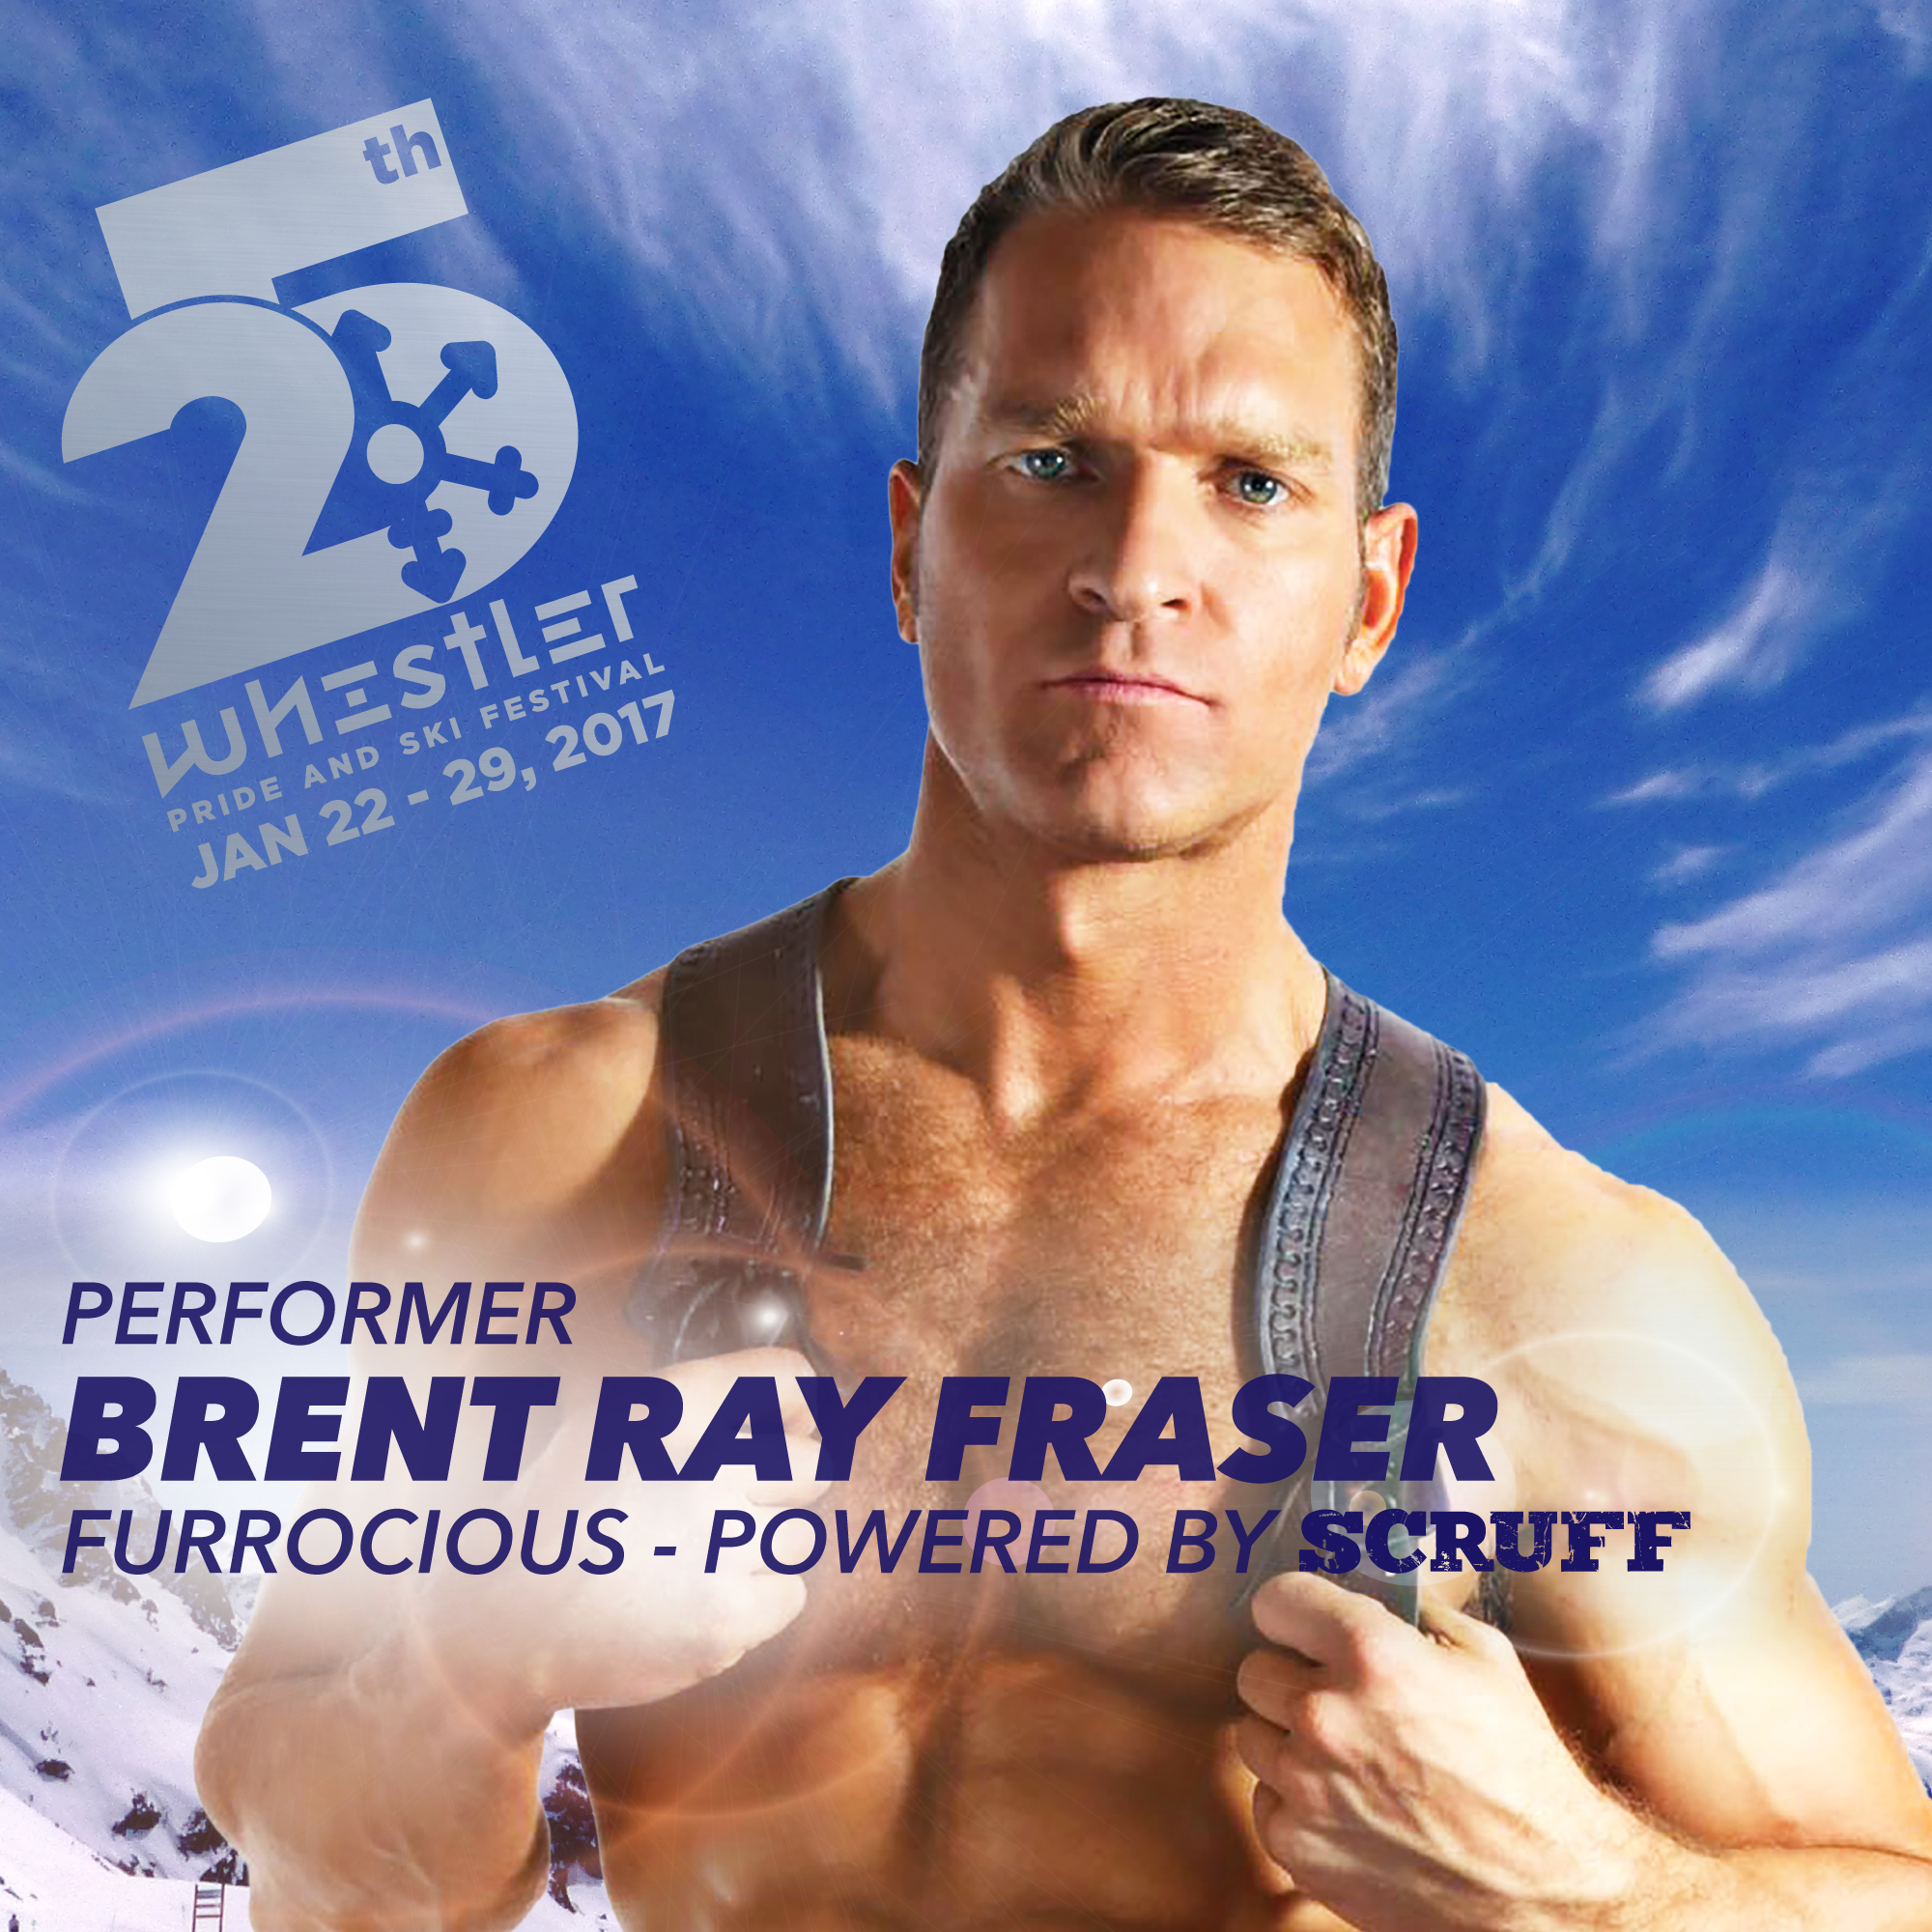 Performance Artists Brent Ray Fraser at Furrocious powered by SCRUFF